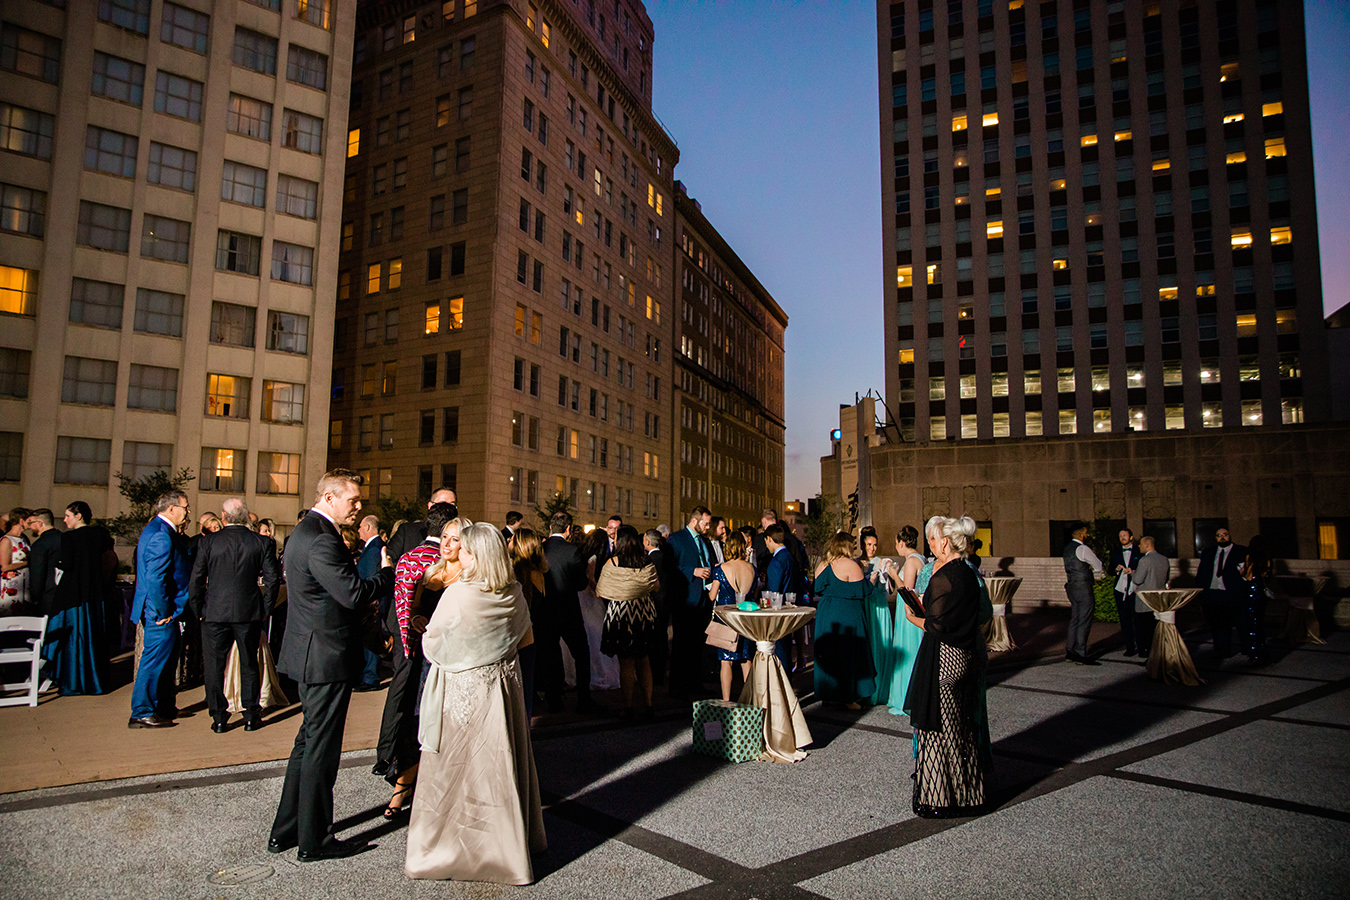 More than half of the couple's 140 guests travelled from Australia, including Jess' grandparents. The couple treated their guests to a truly New Orleans experience including a cocktail hour on the rooftop of the Roosevelt Hotel.